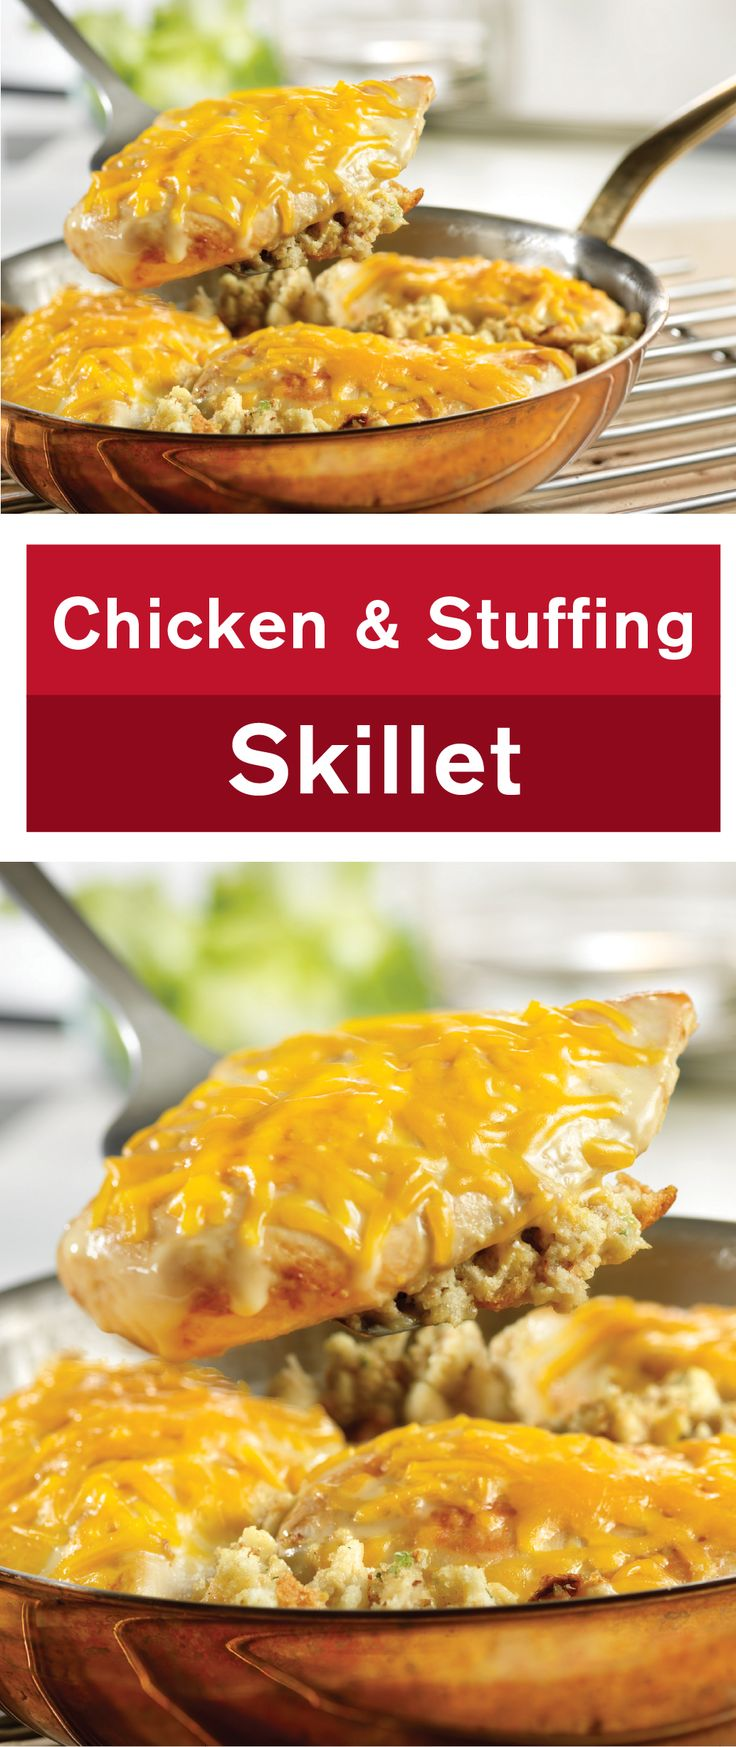 Campbell soup baked chicken recipes easy